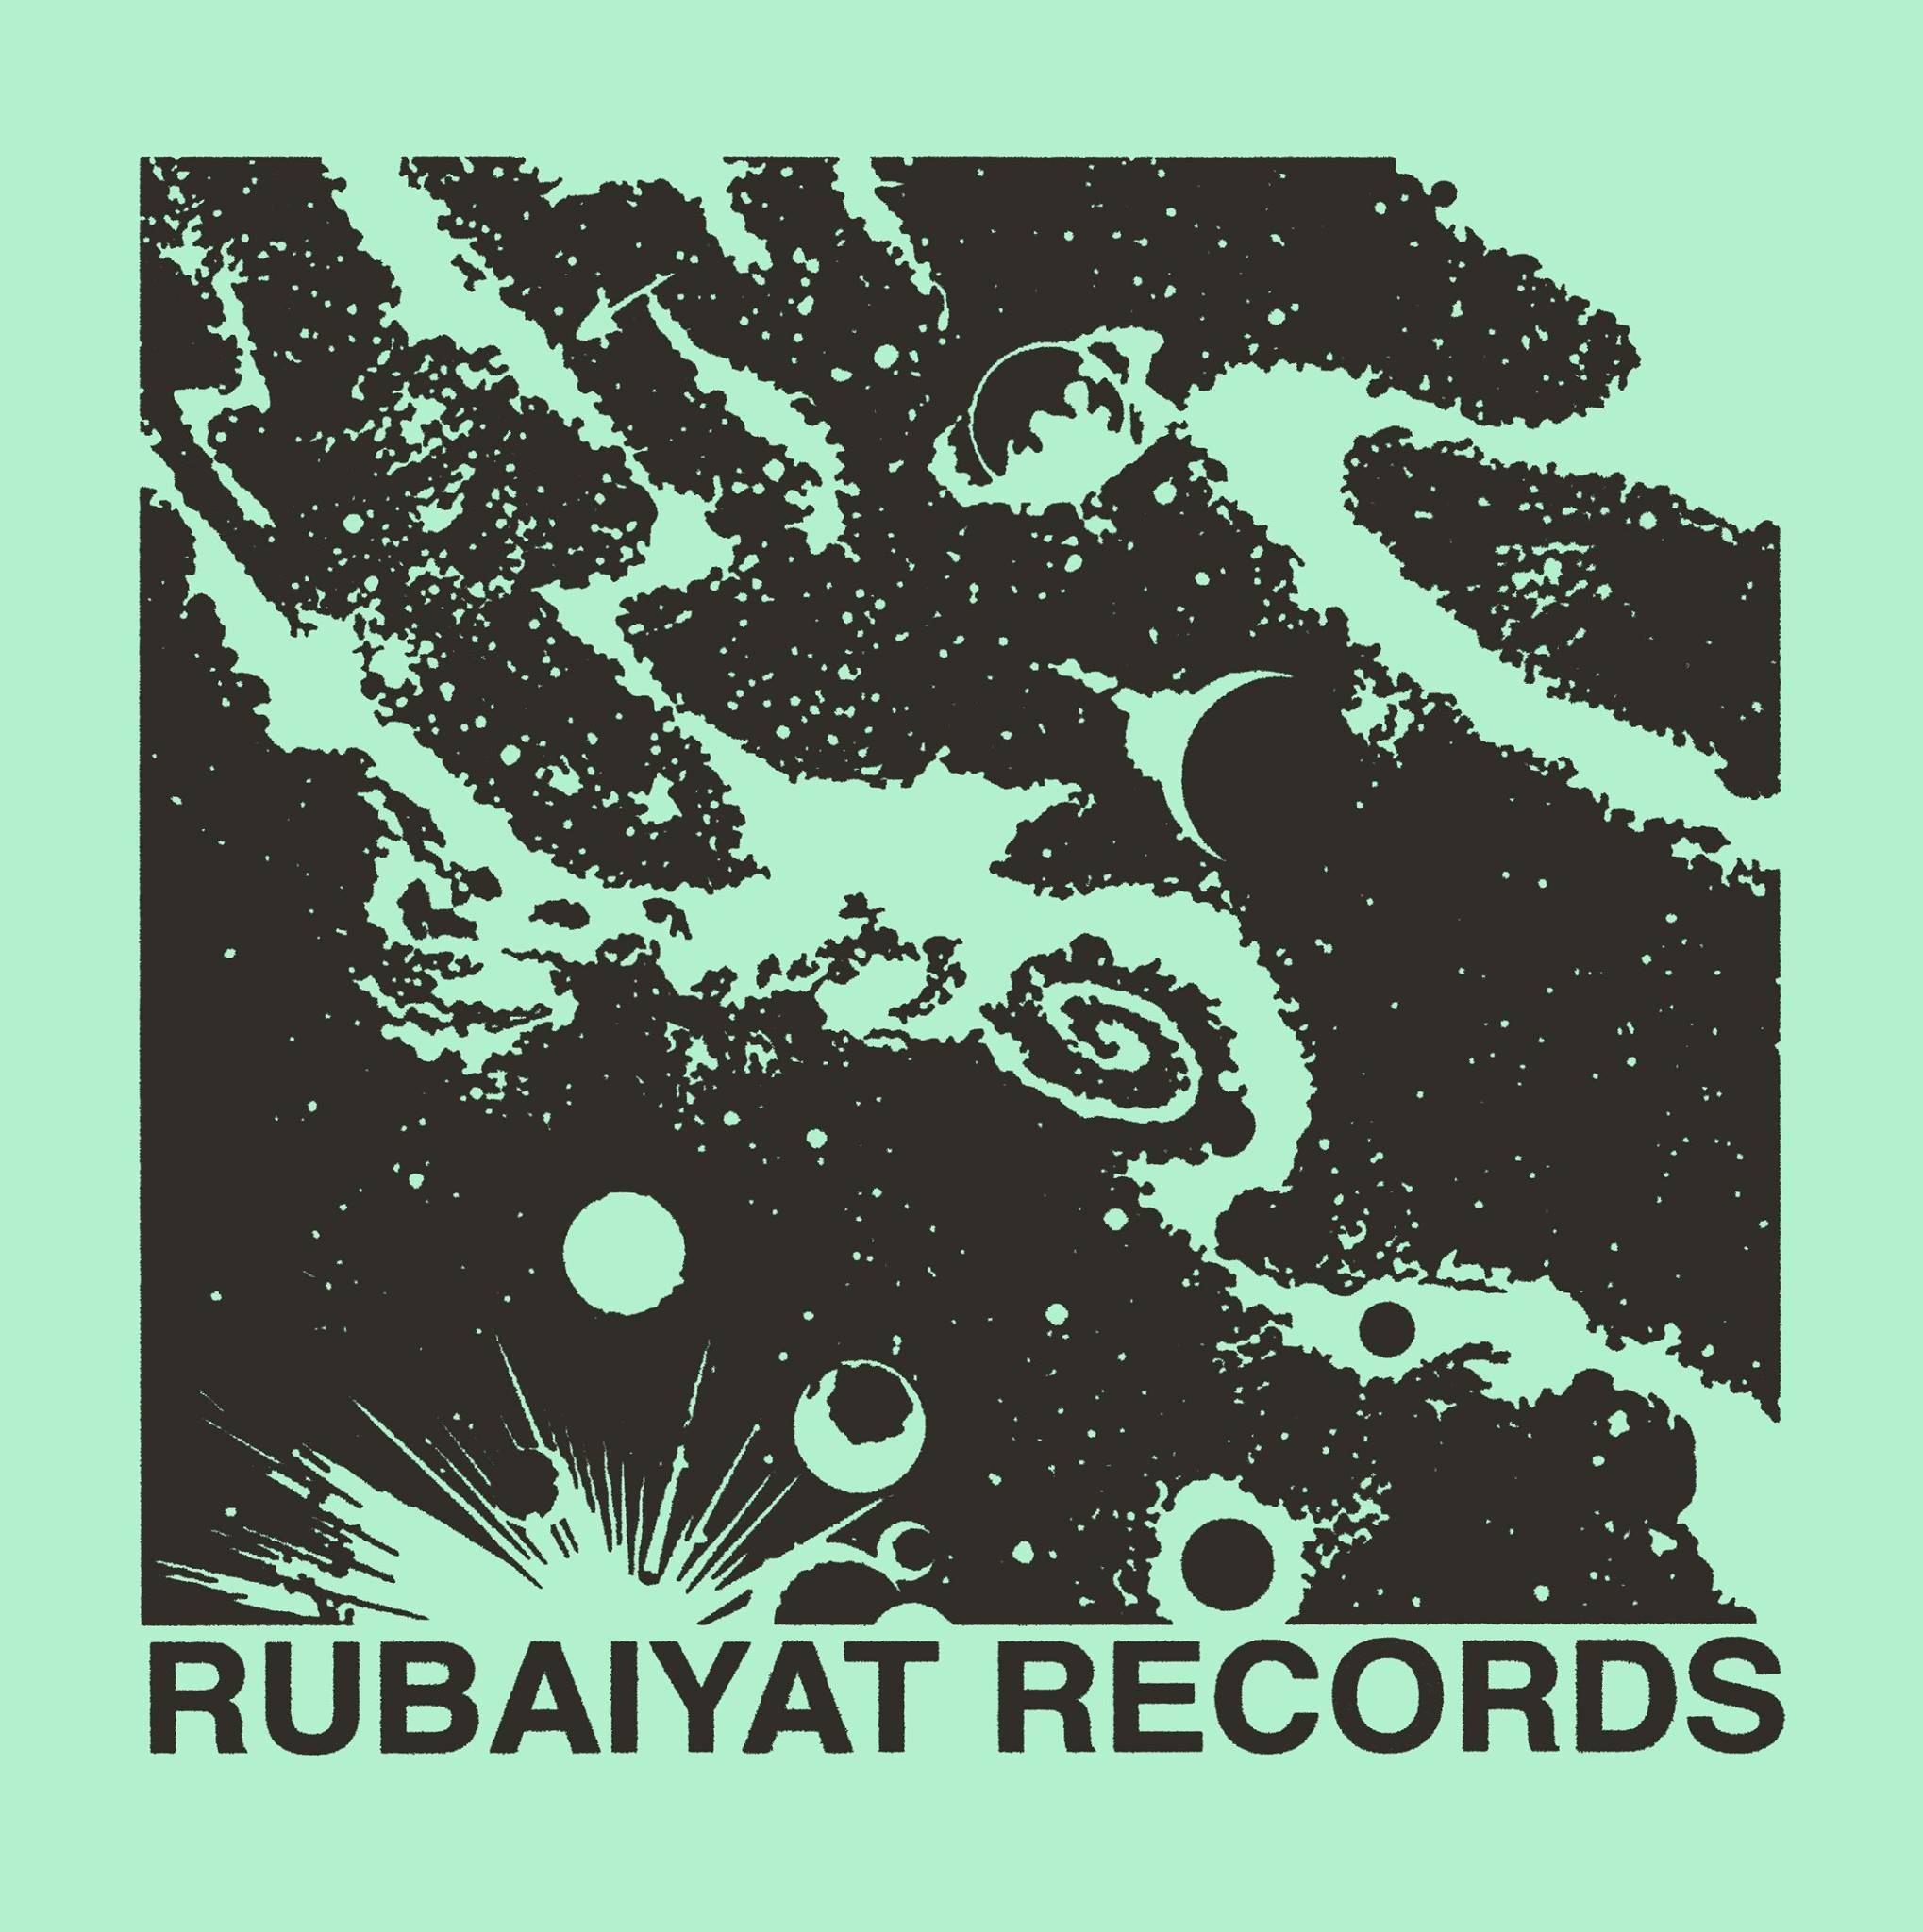 Rubaiyat Records